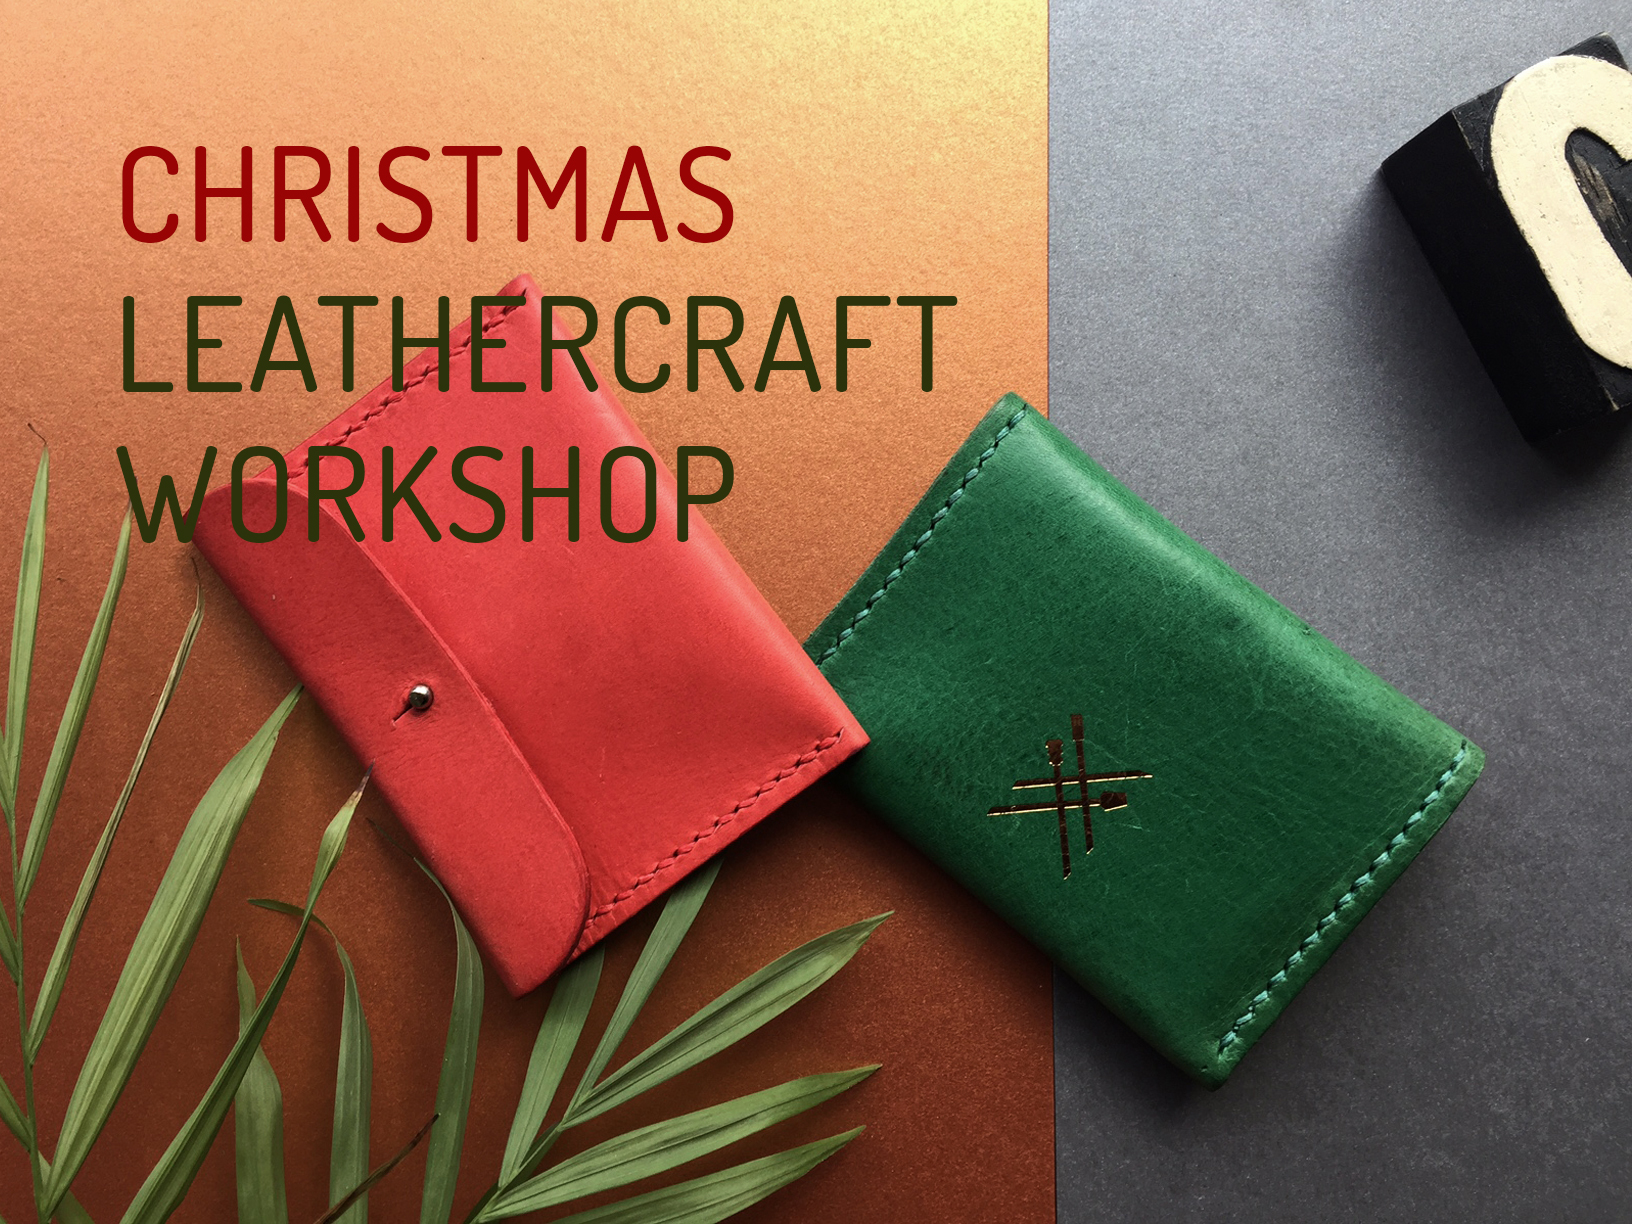 Christmas Leathercraft Workshop